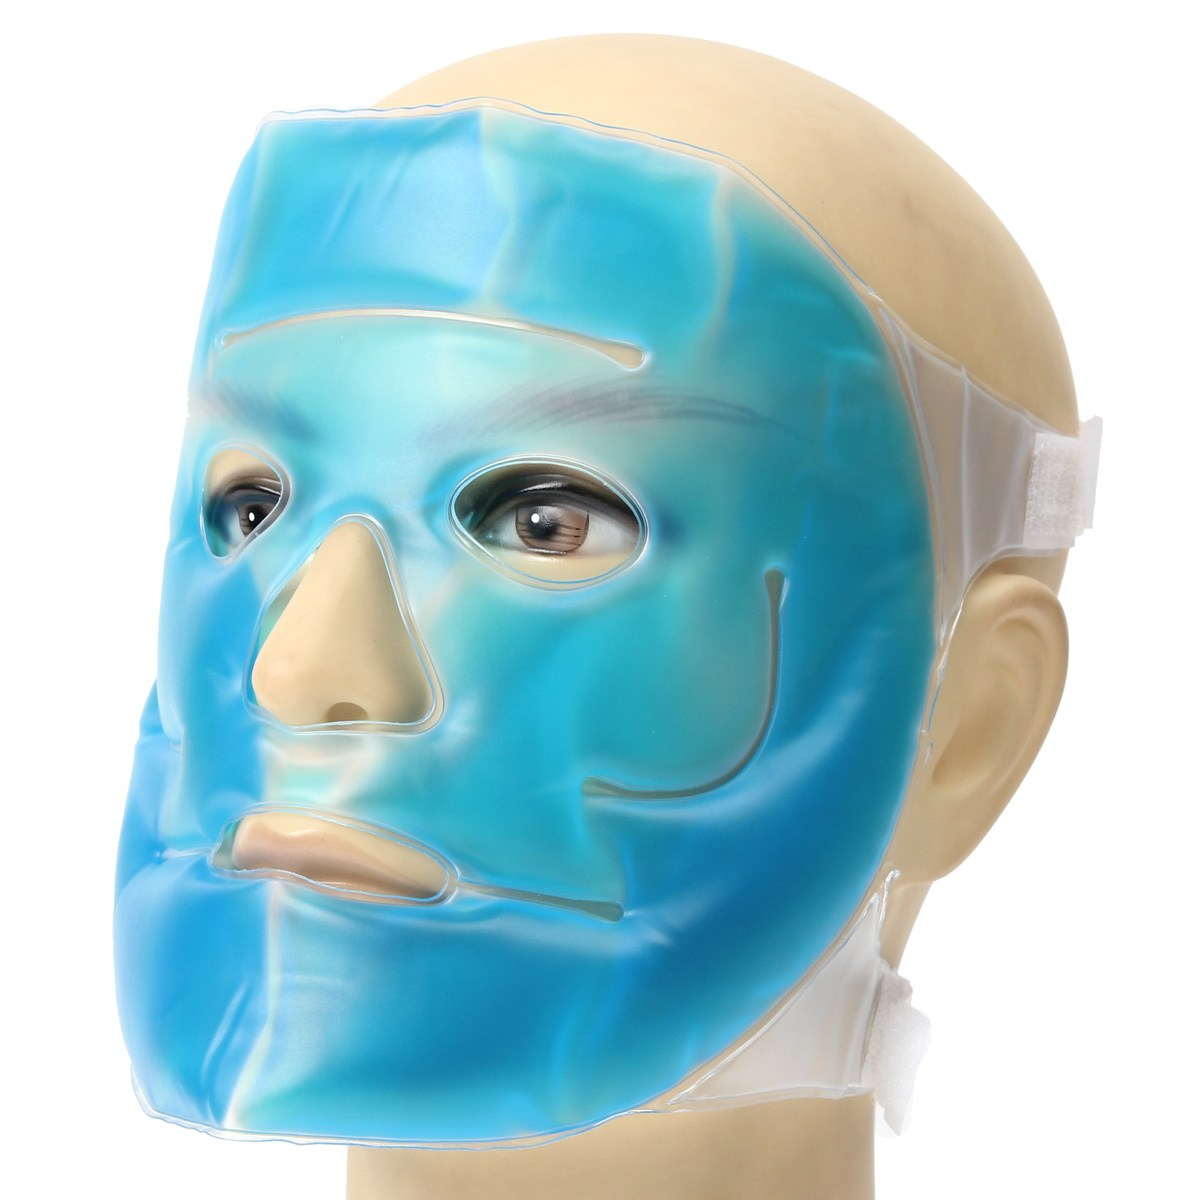 1 Pcs Cold Gel Face Mask Ice Compress Blue Full Face Cooling Mask Fatigue Relief Relaxation Pad With Cold Pack Faical Care Tool ice mask for face